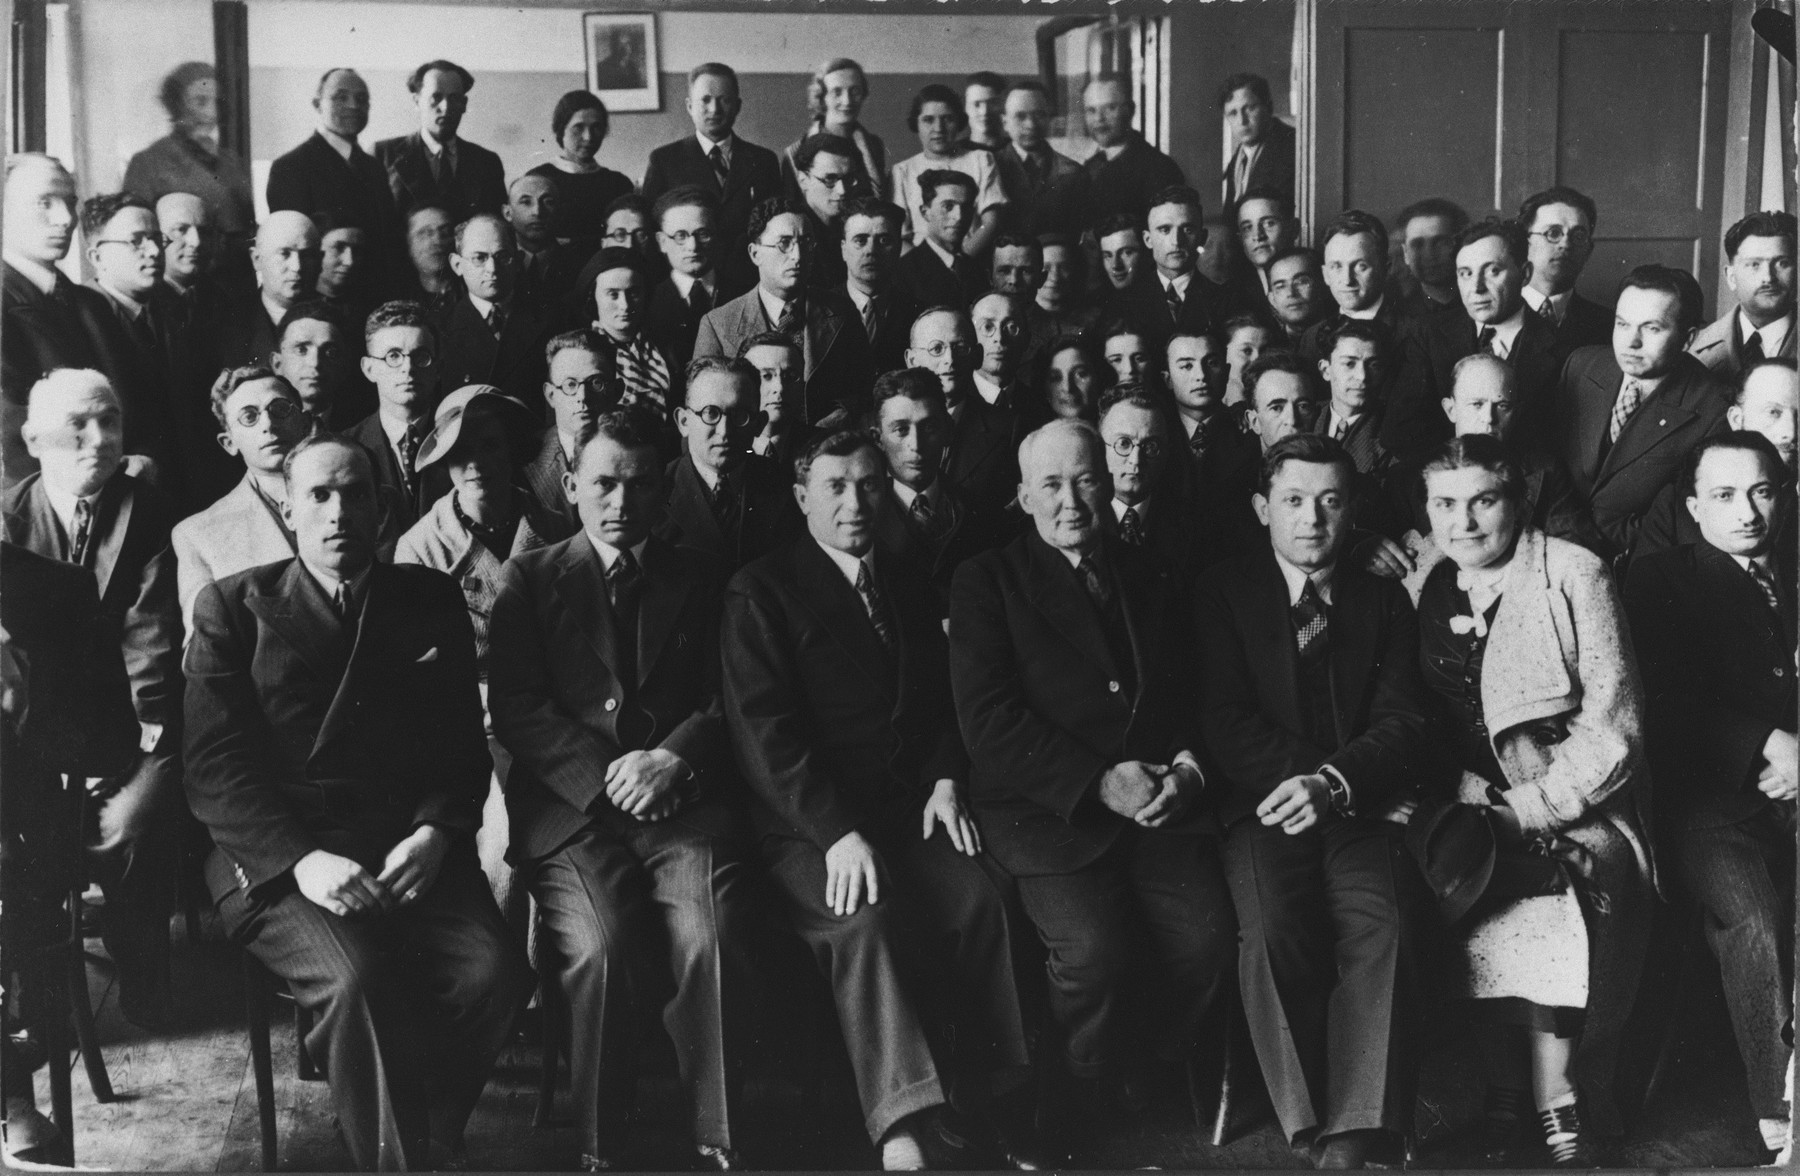 Group portrait of Jewish Tarbut school teachers at a national convention.    Among those pictured is Ralph Denishevsky (front row, left).